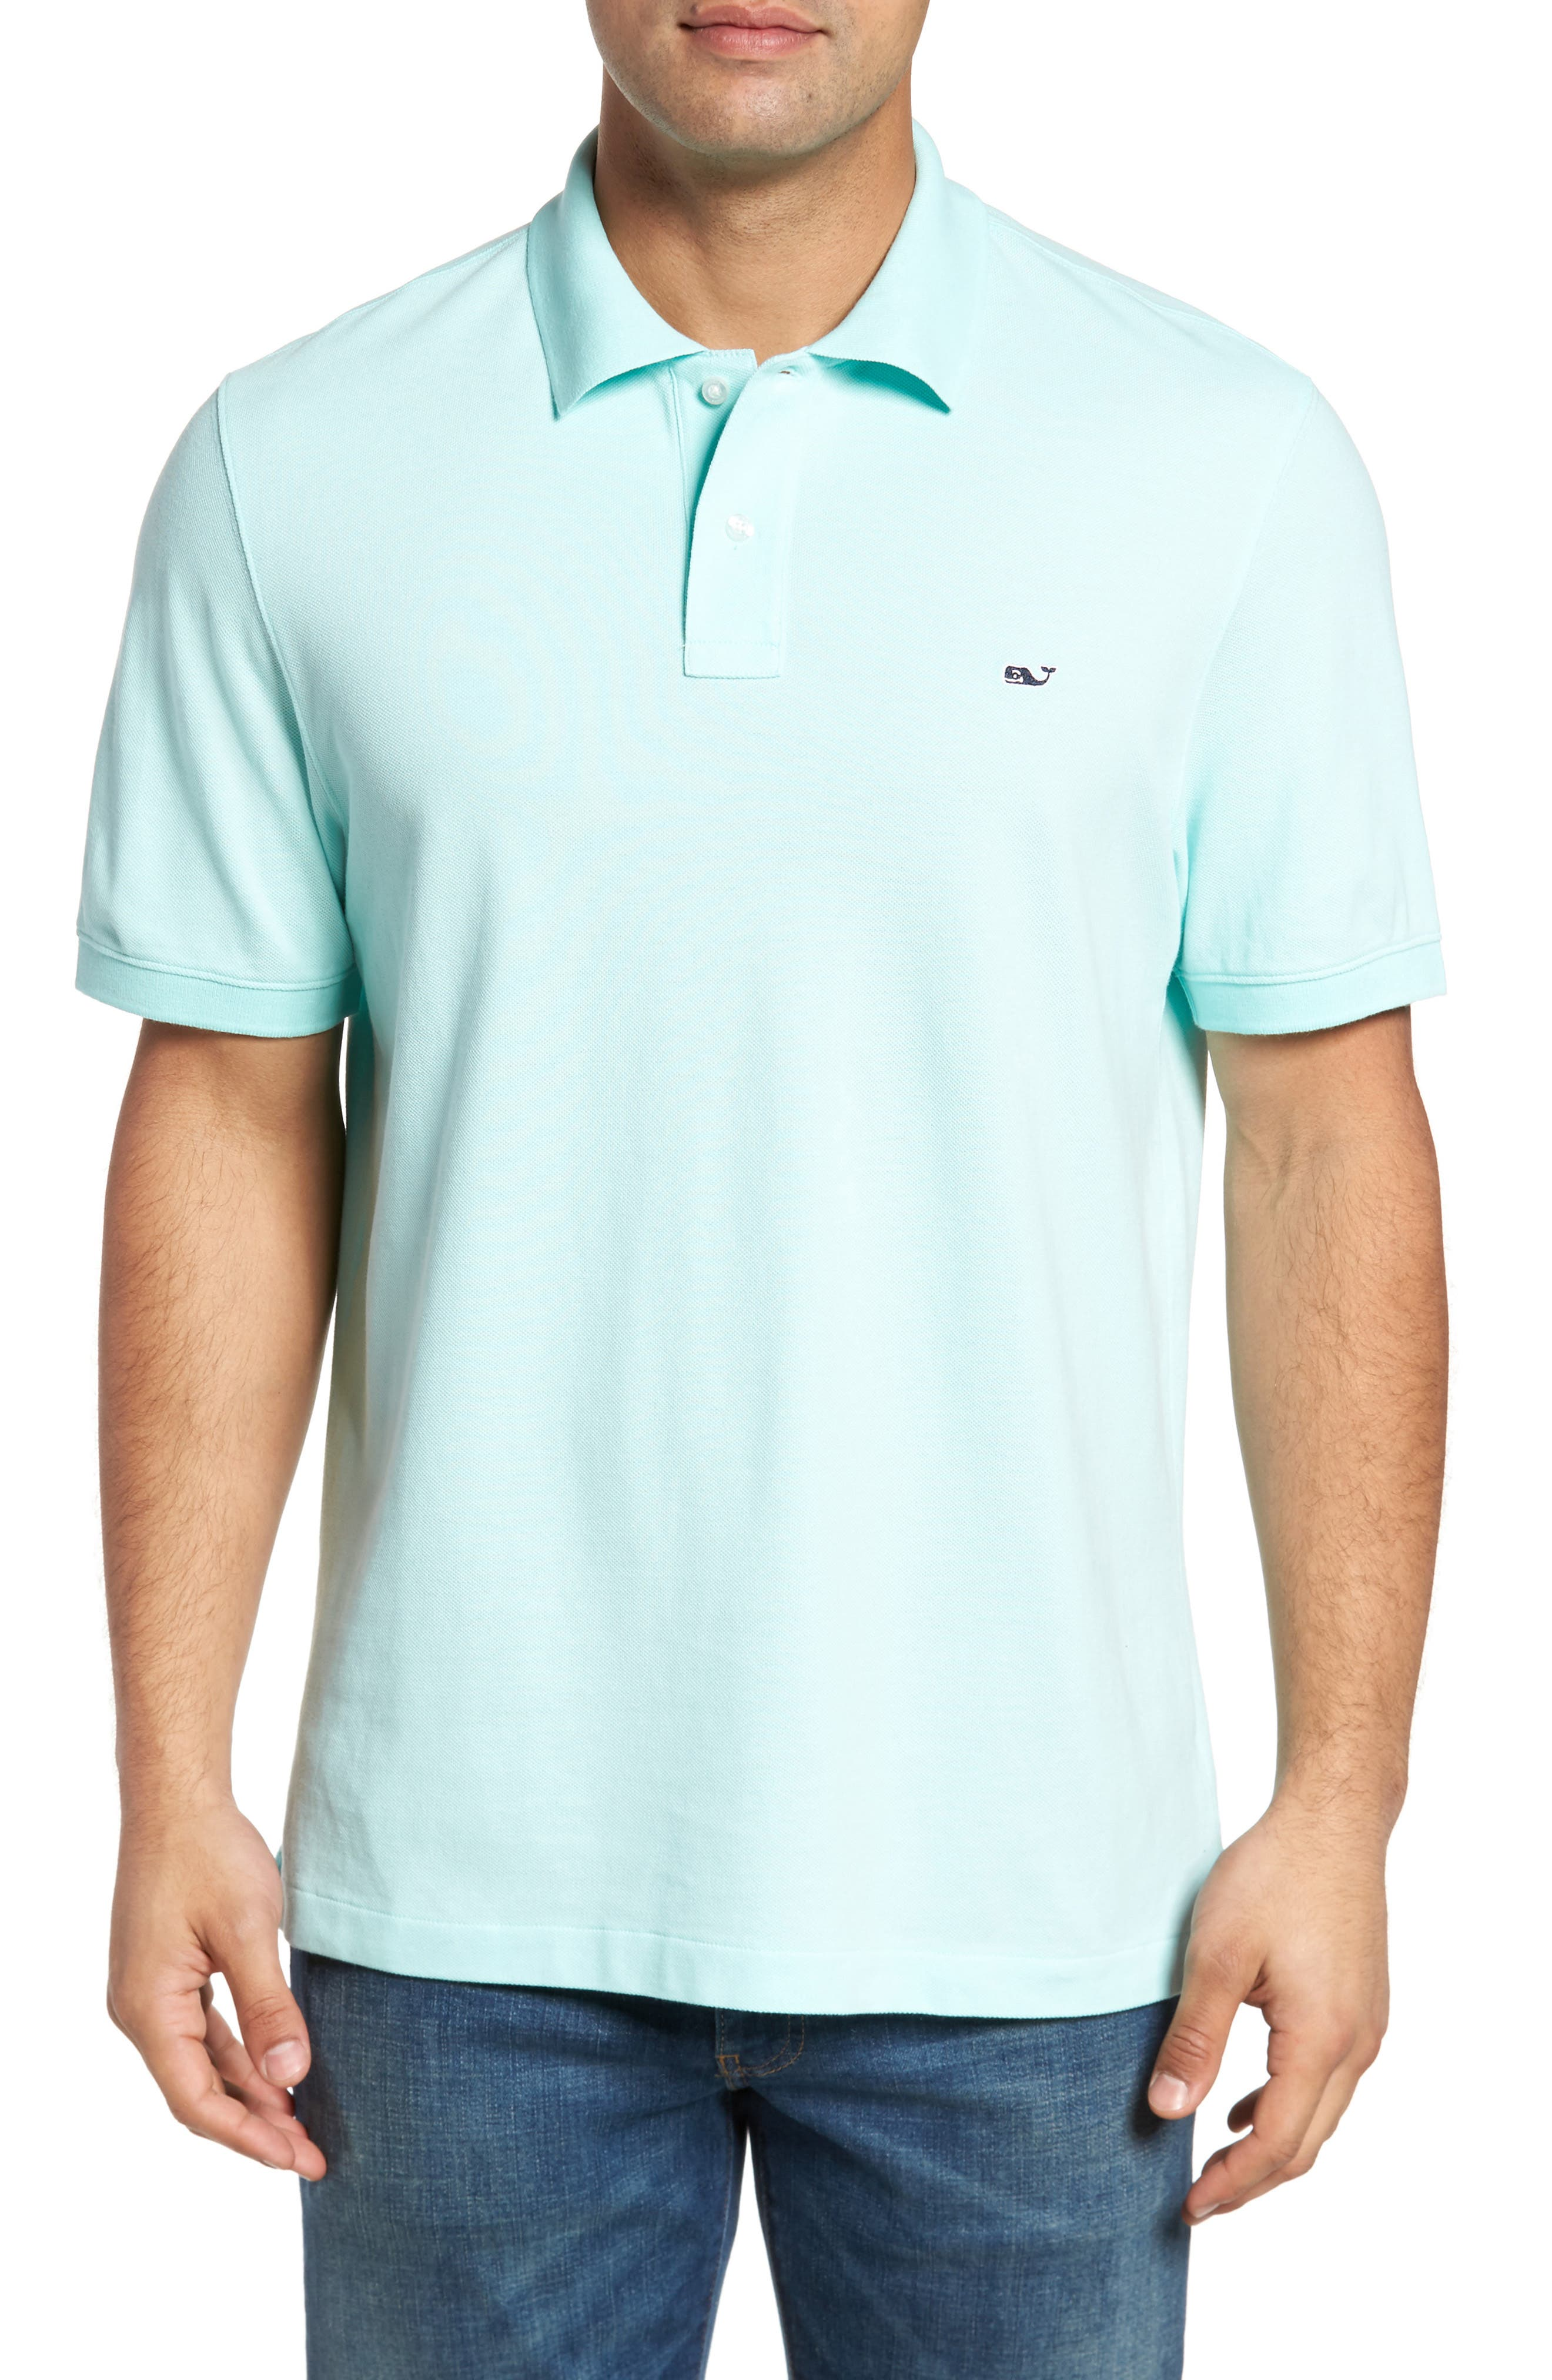 vineyard vines Classic Piqué Knit Polo